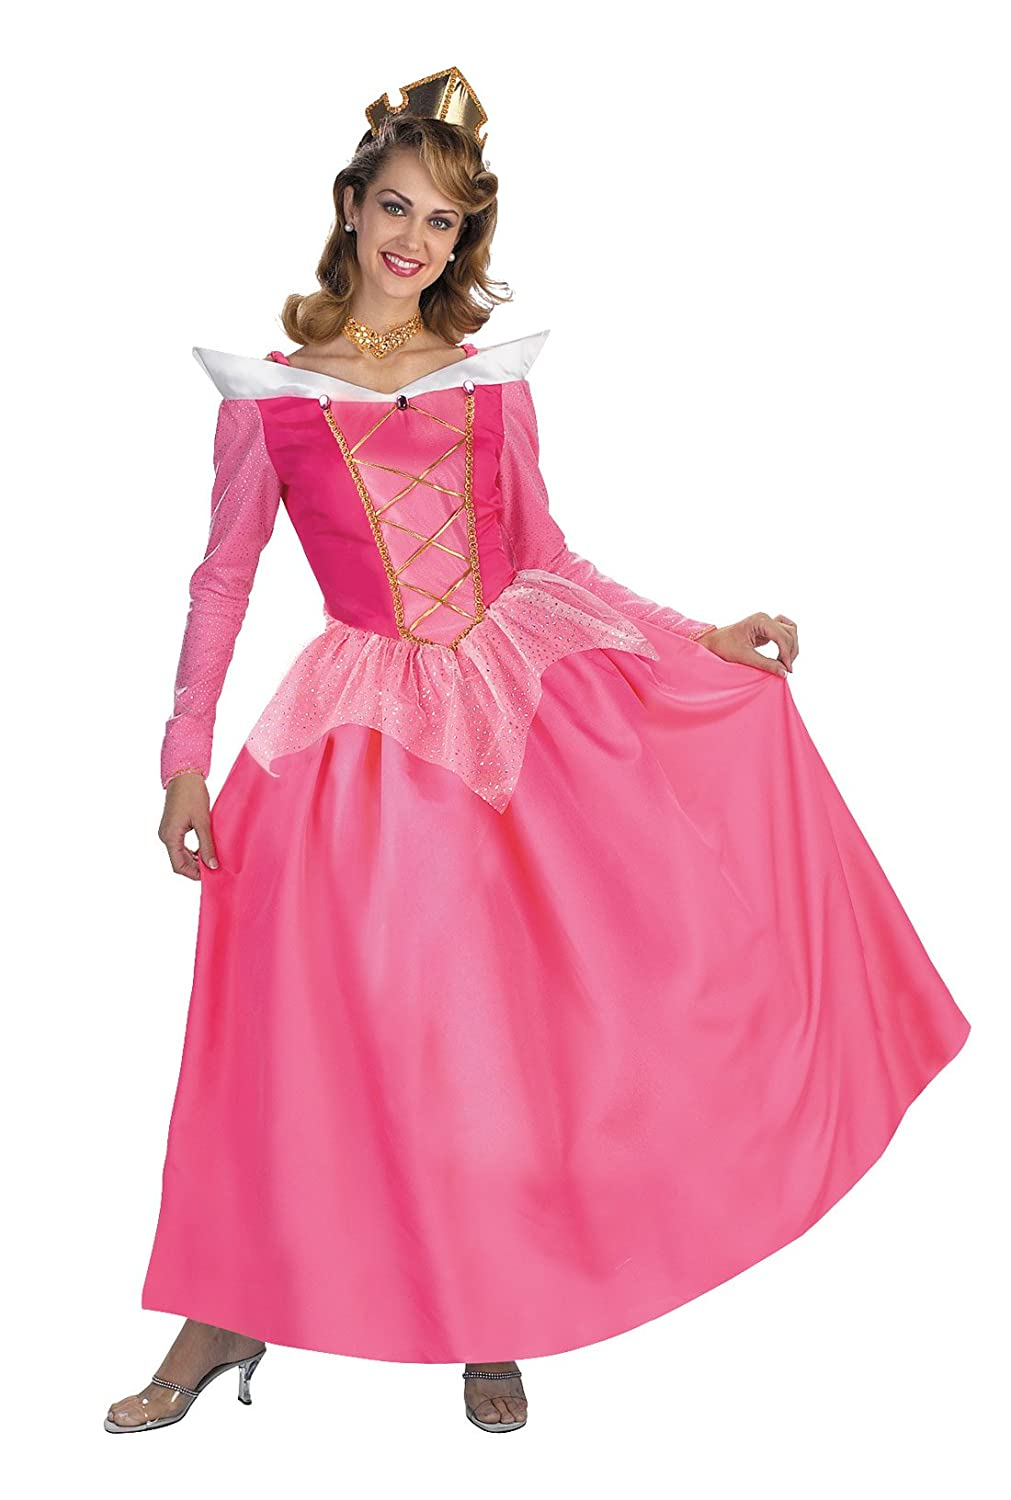 sc 1 st  Amazon.com & Amazon.com: Aurora Prestige Adult Costume - Large: Clothing